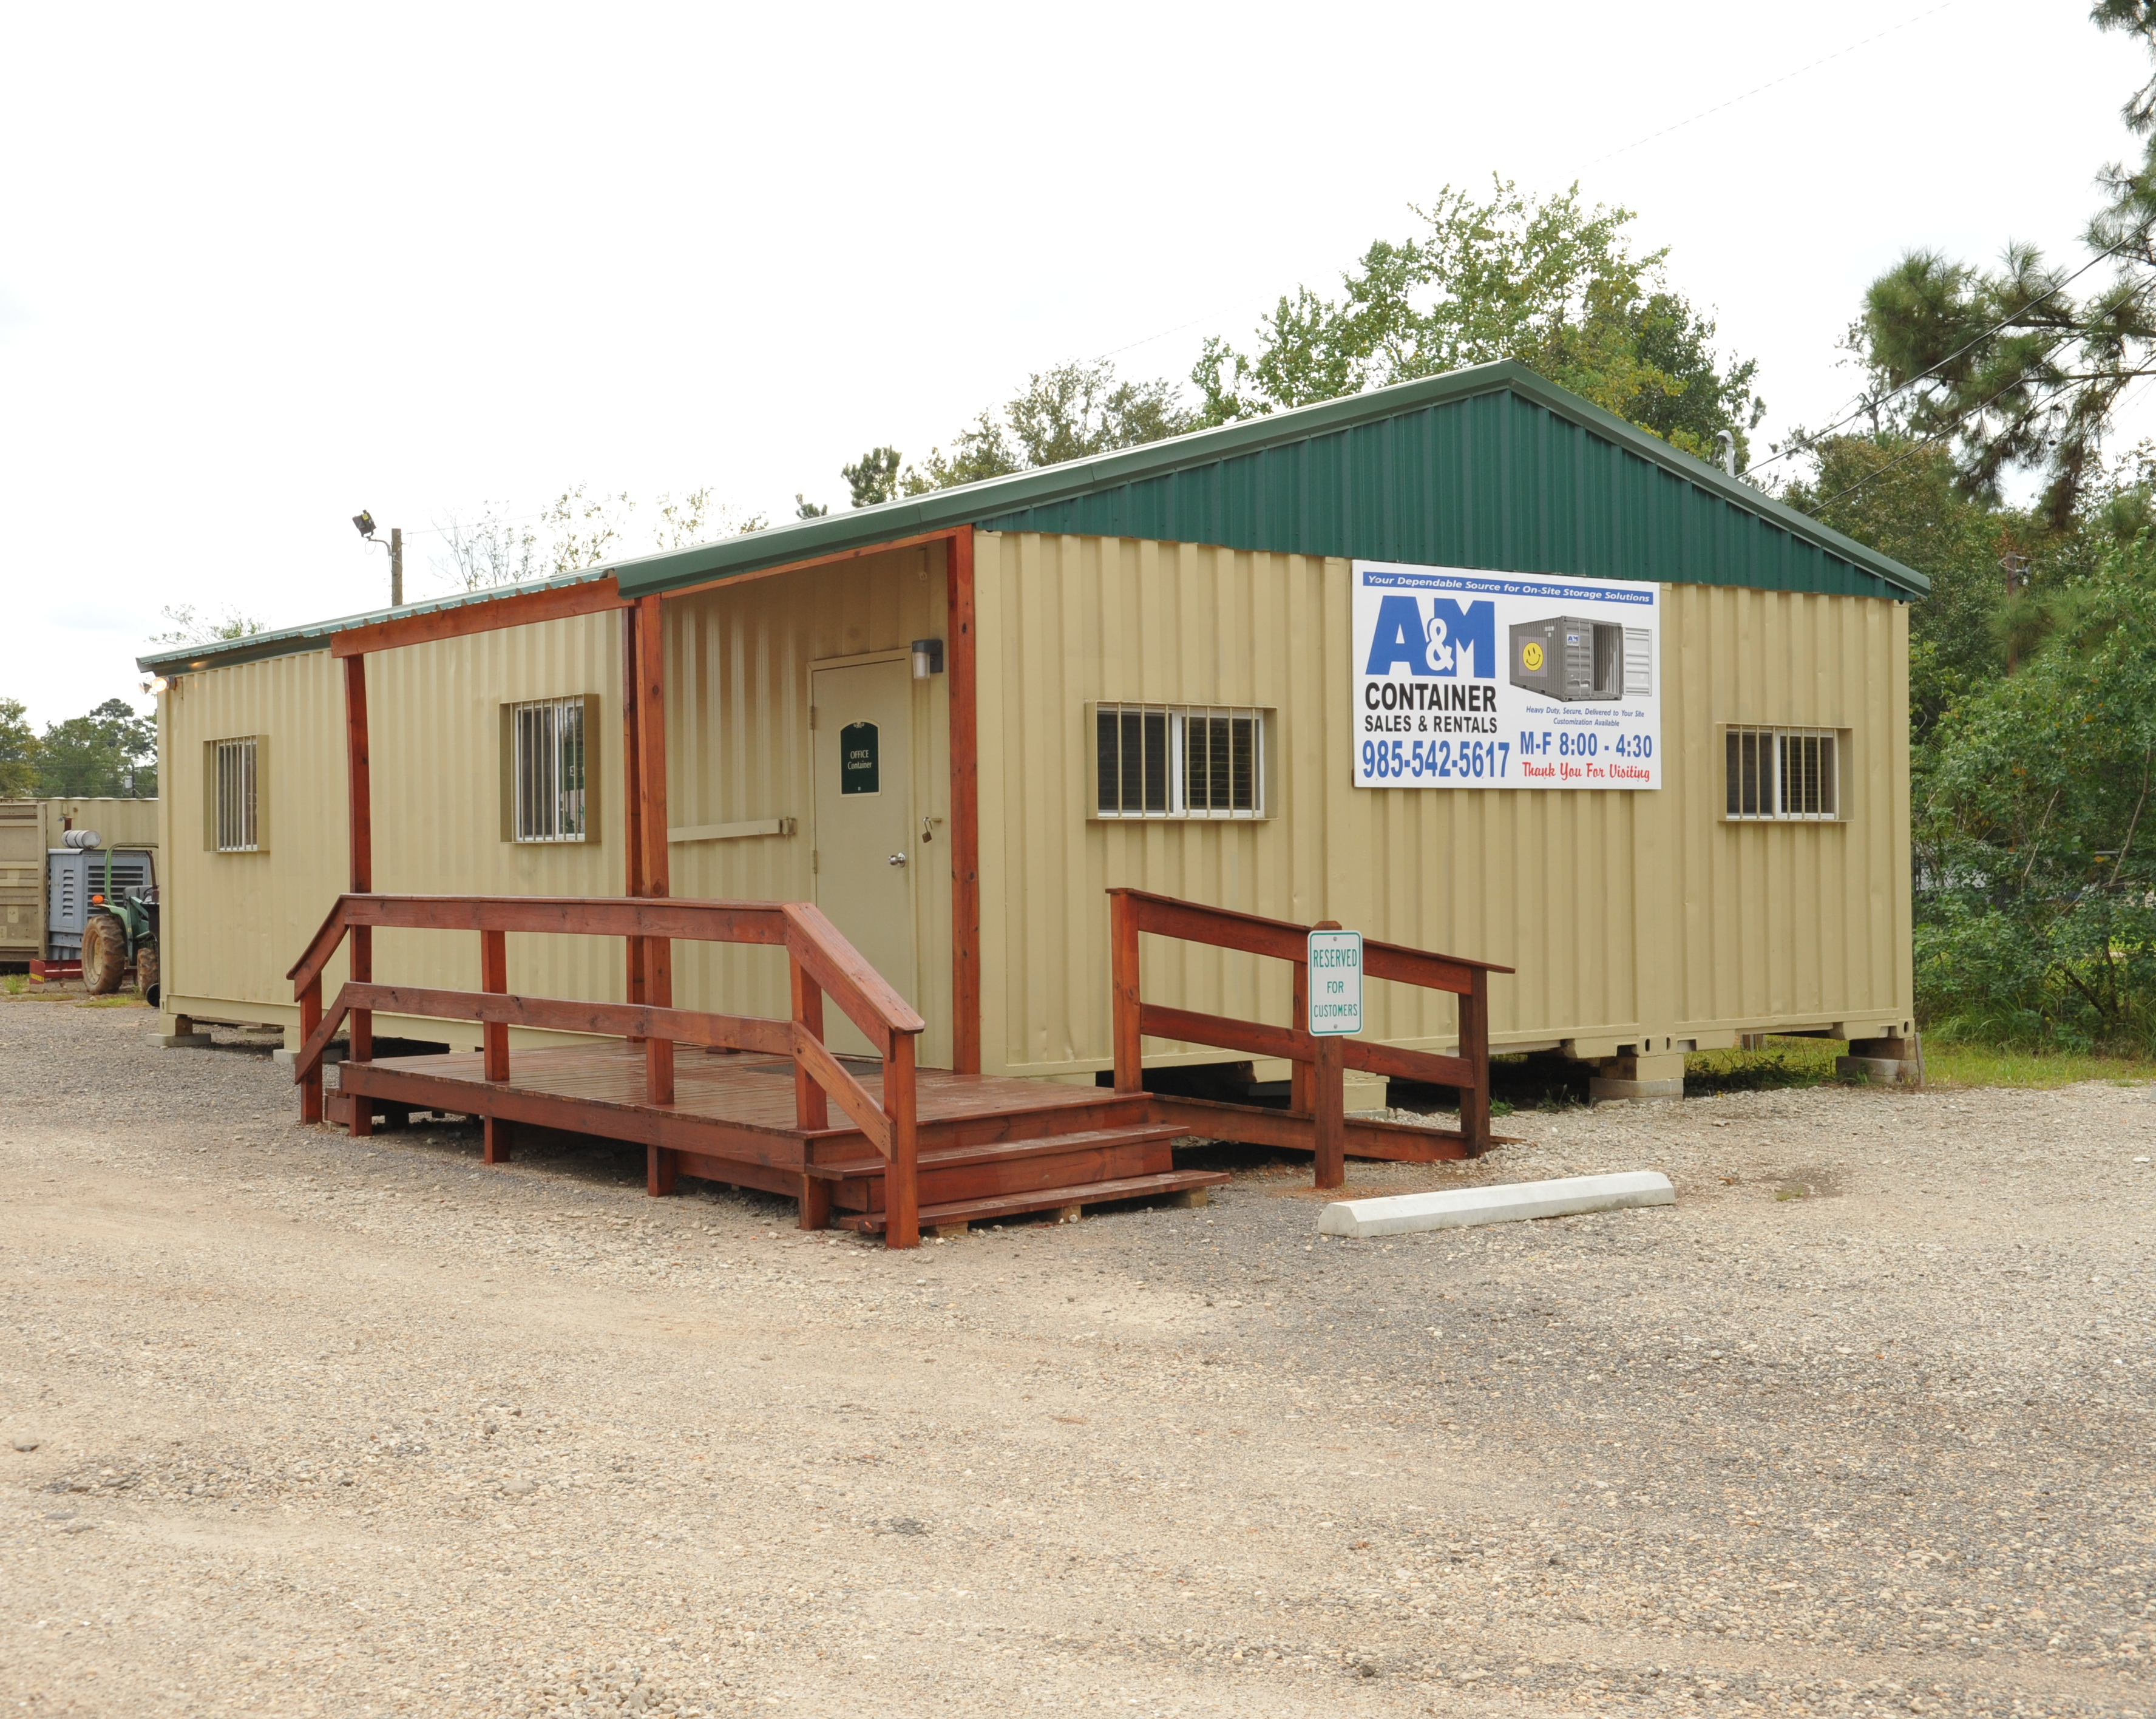 A M Containers Shipping Containers for Sale or Rent